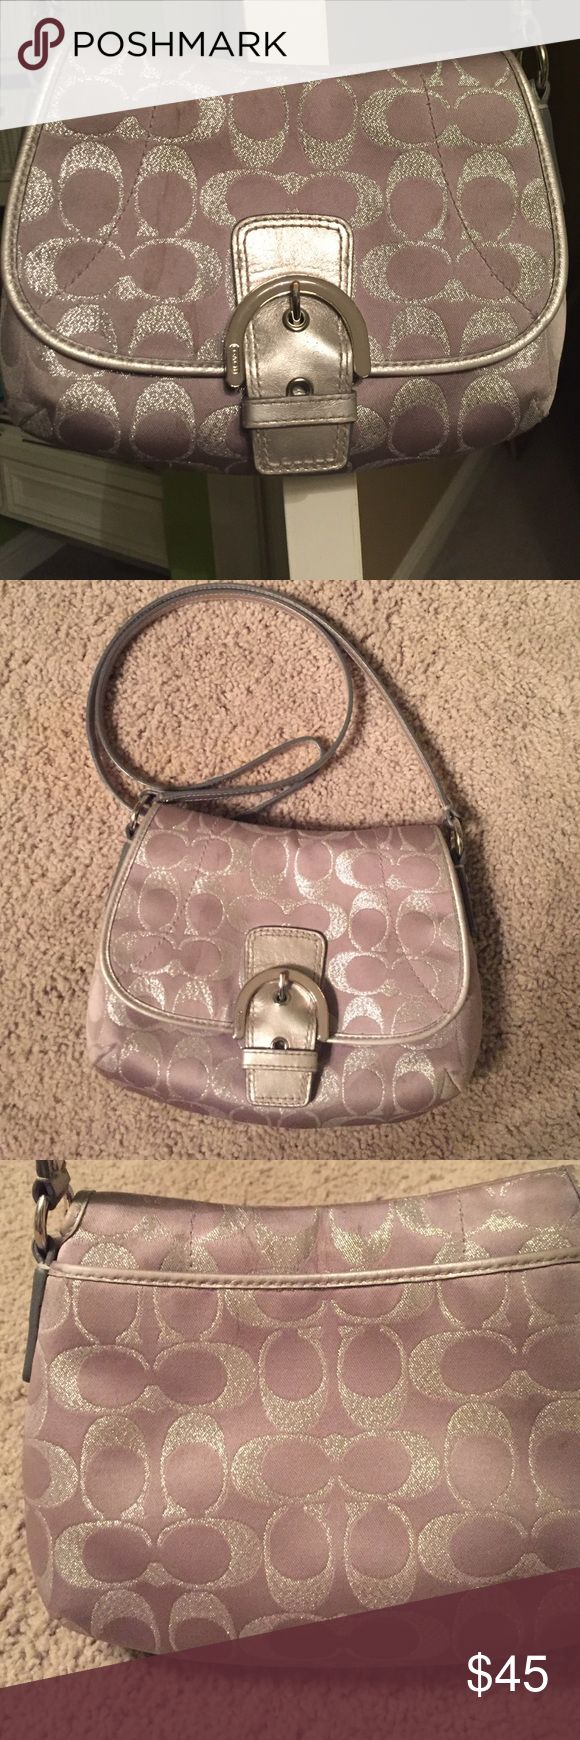 Silver coach purse 👛 The color is silver and it has a little sparkle on it. It is a small purse with one pocket on the back and one pocket on the inside. It is not in horrible connection but has 1-2 spots on it. But other than that it is perfect for carrying your little things! I am willing to adjust price some. Coach Bags Crossbody Bags